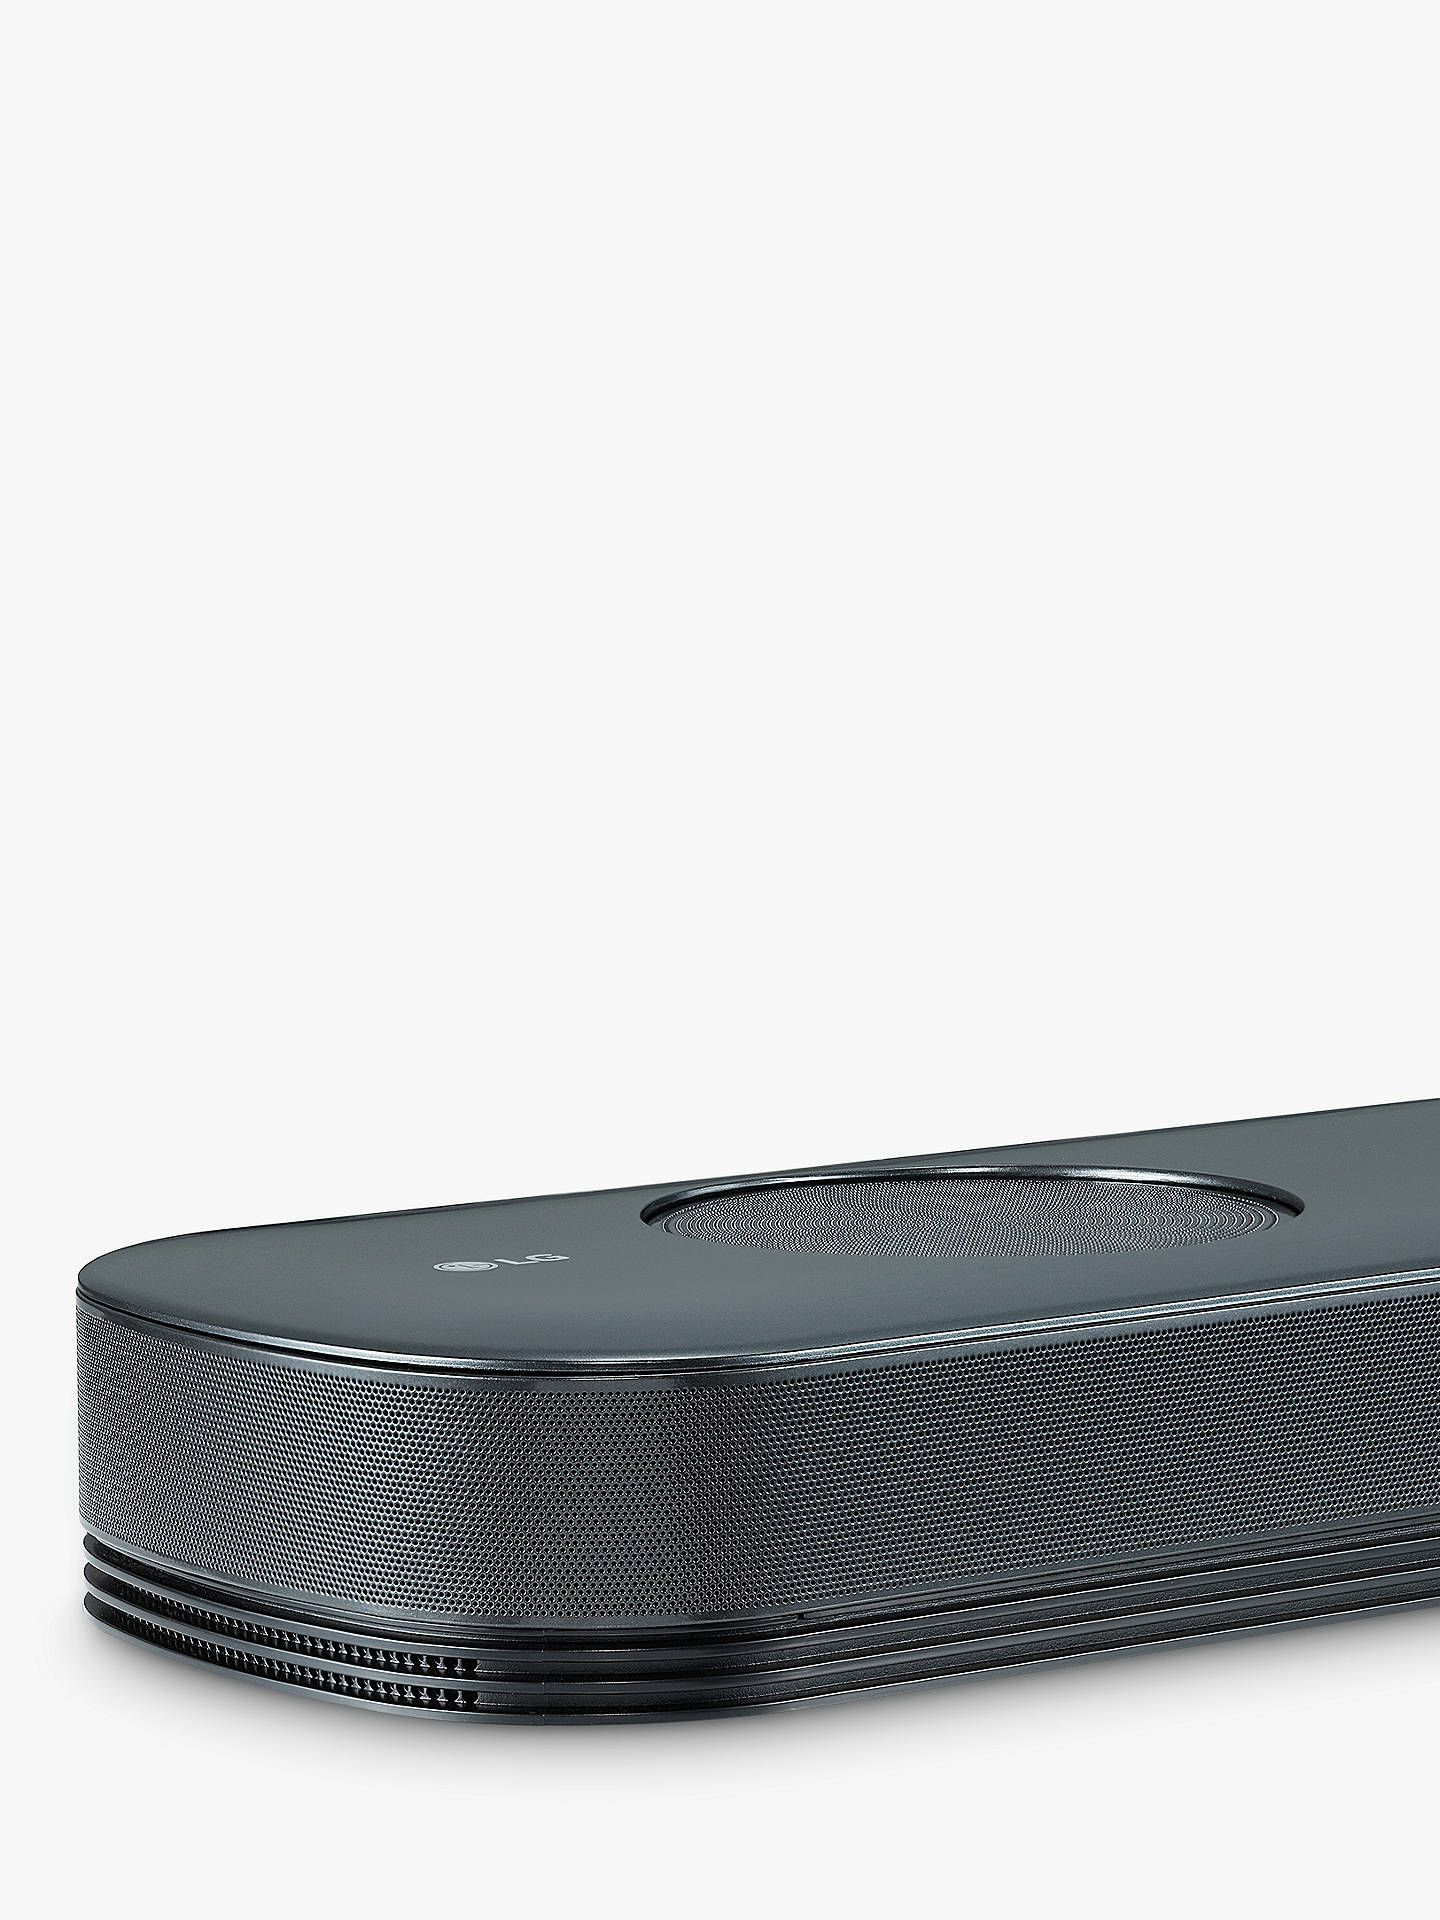 BuyLG SK9Y Wi-Fi Bluetooth Sound Bar with Wireless Subwoofer, Dolby Atmos, High Resolution Audio & Chromecast Built-in, Black Online at johnlewis.com